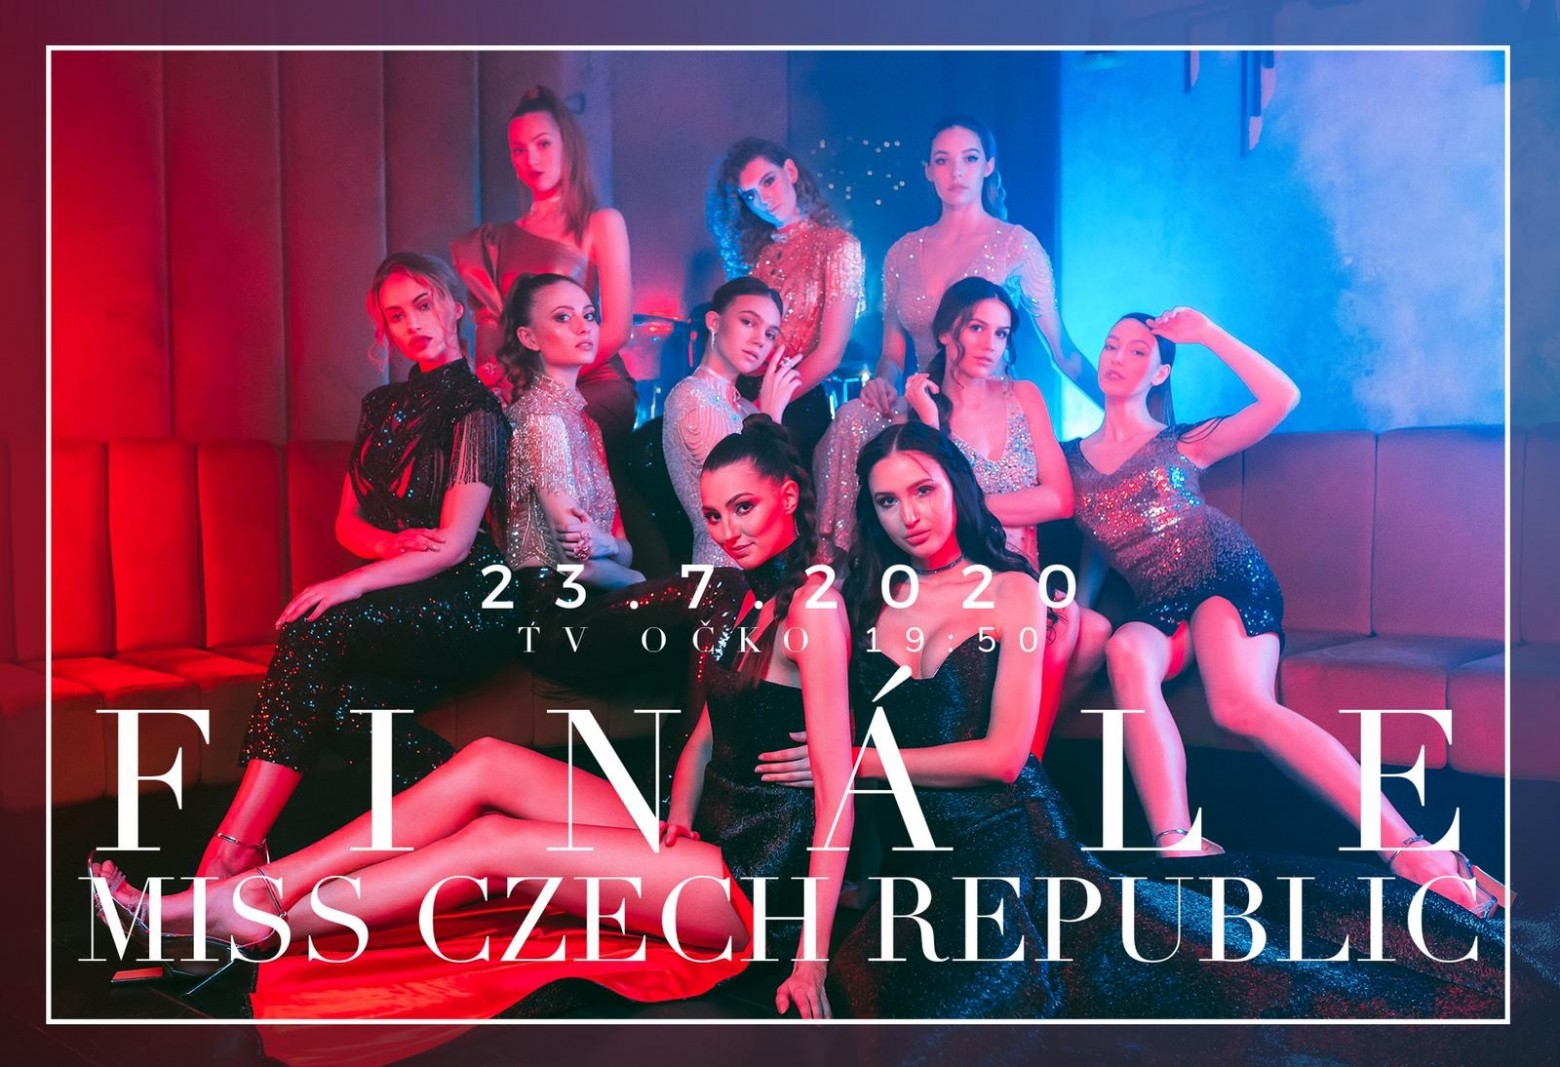 Finále MISS CZECH REPUBLIC 2020 23.7.2020 , 19:50 TV ÓČKO